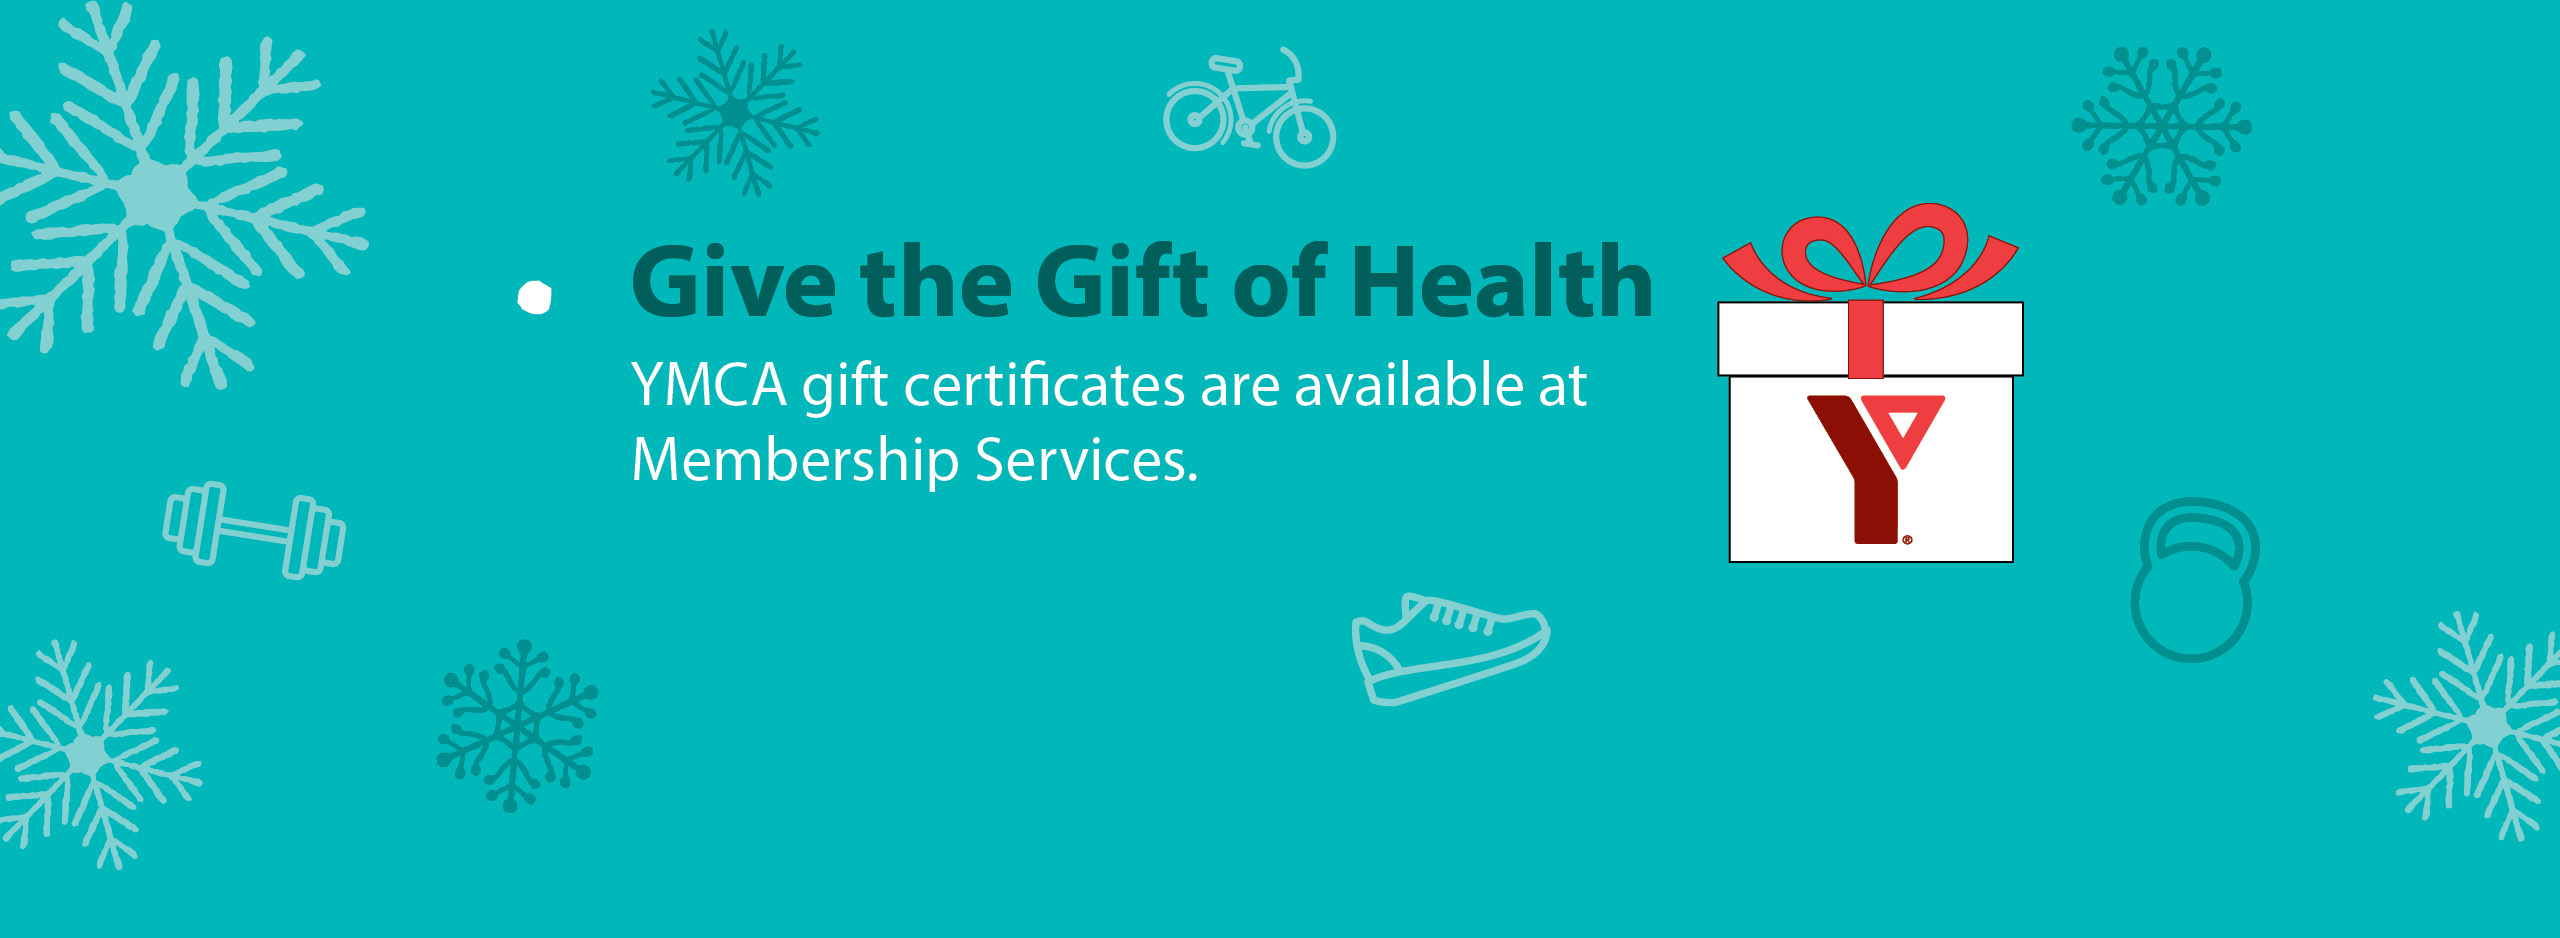 Gift of Health promotional banner